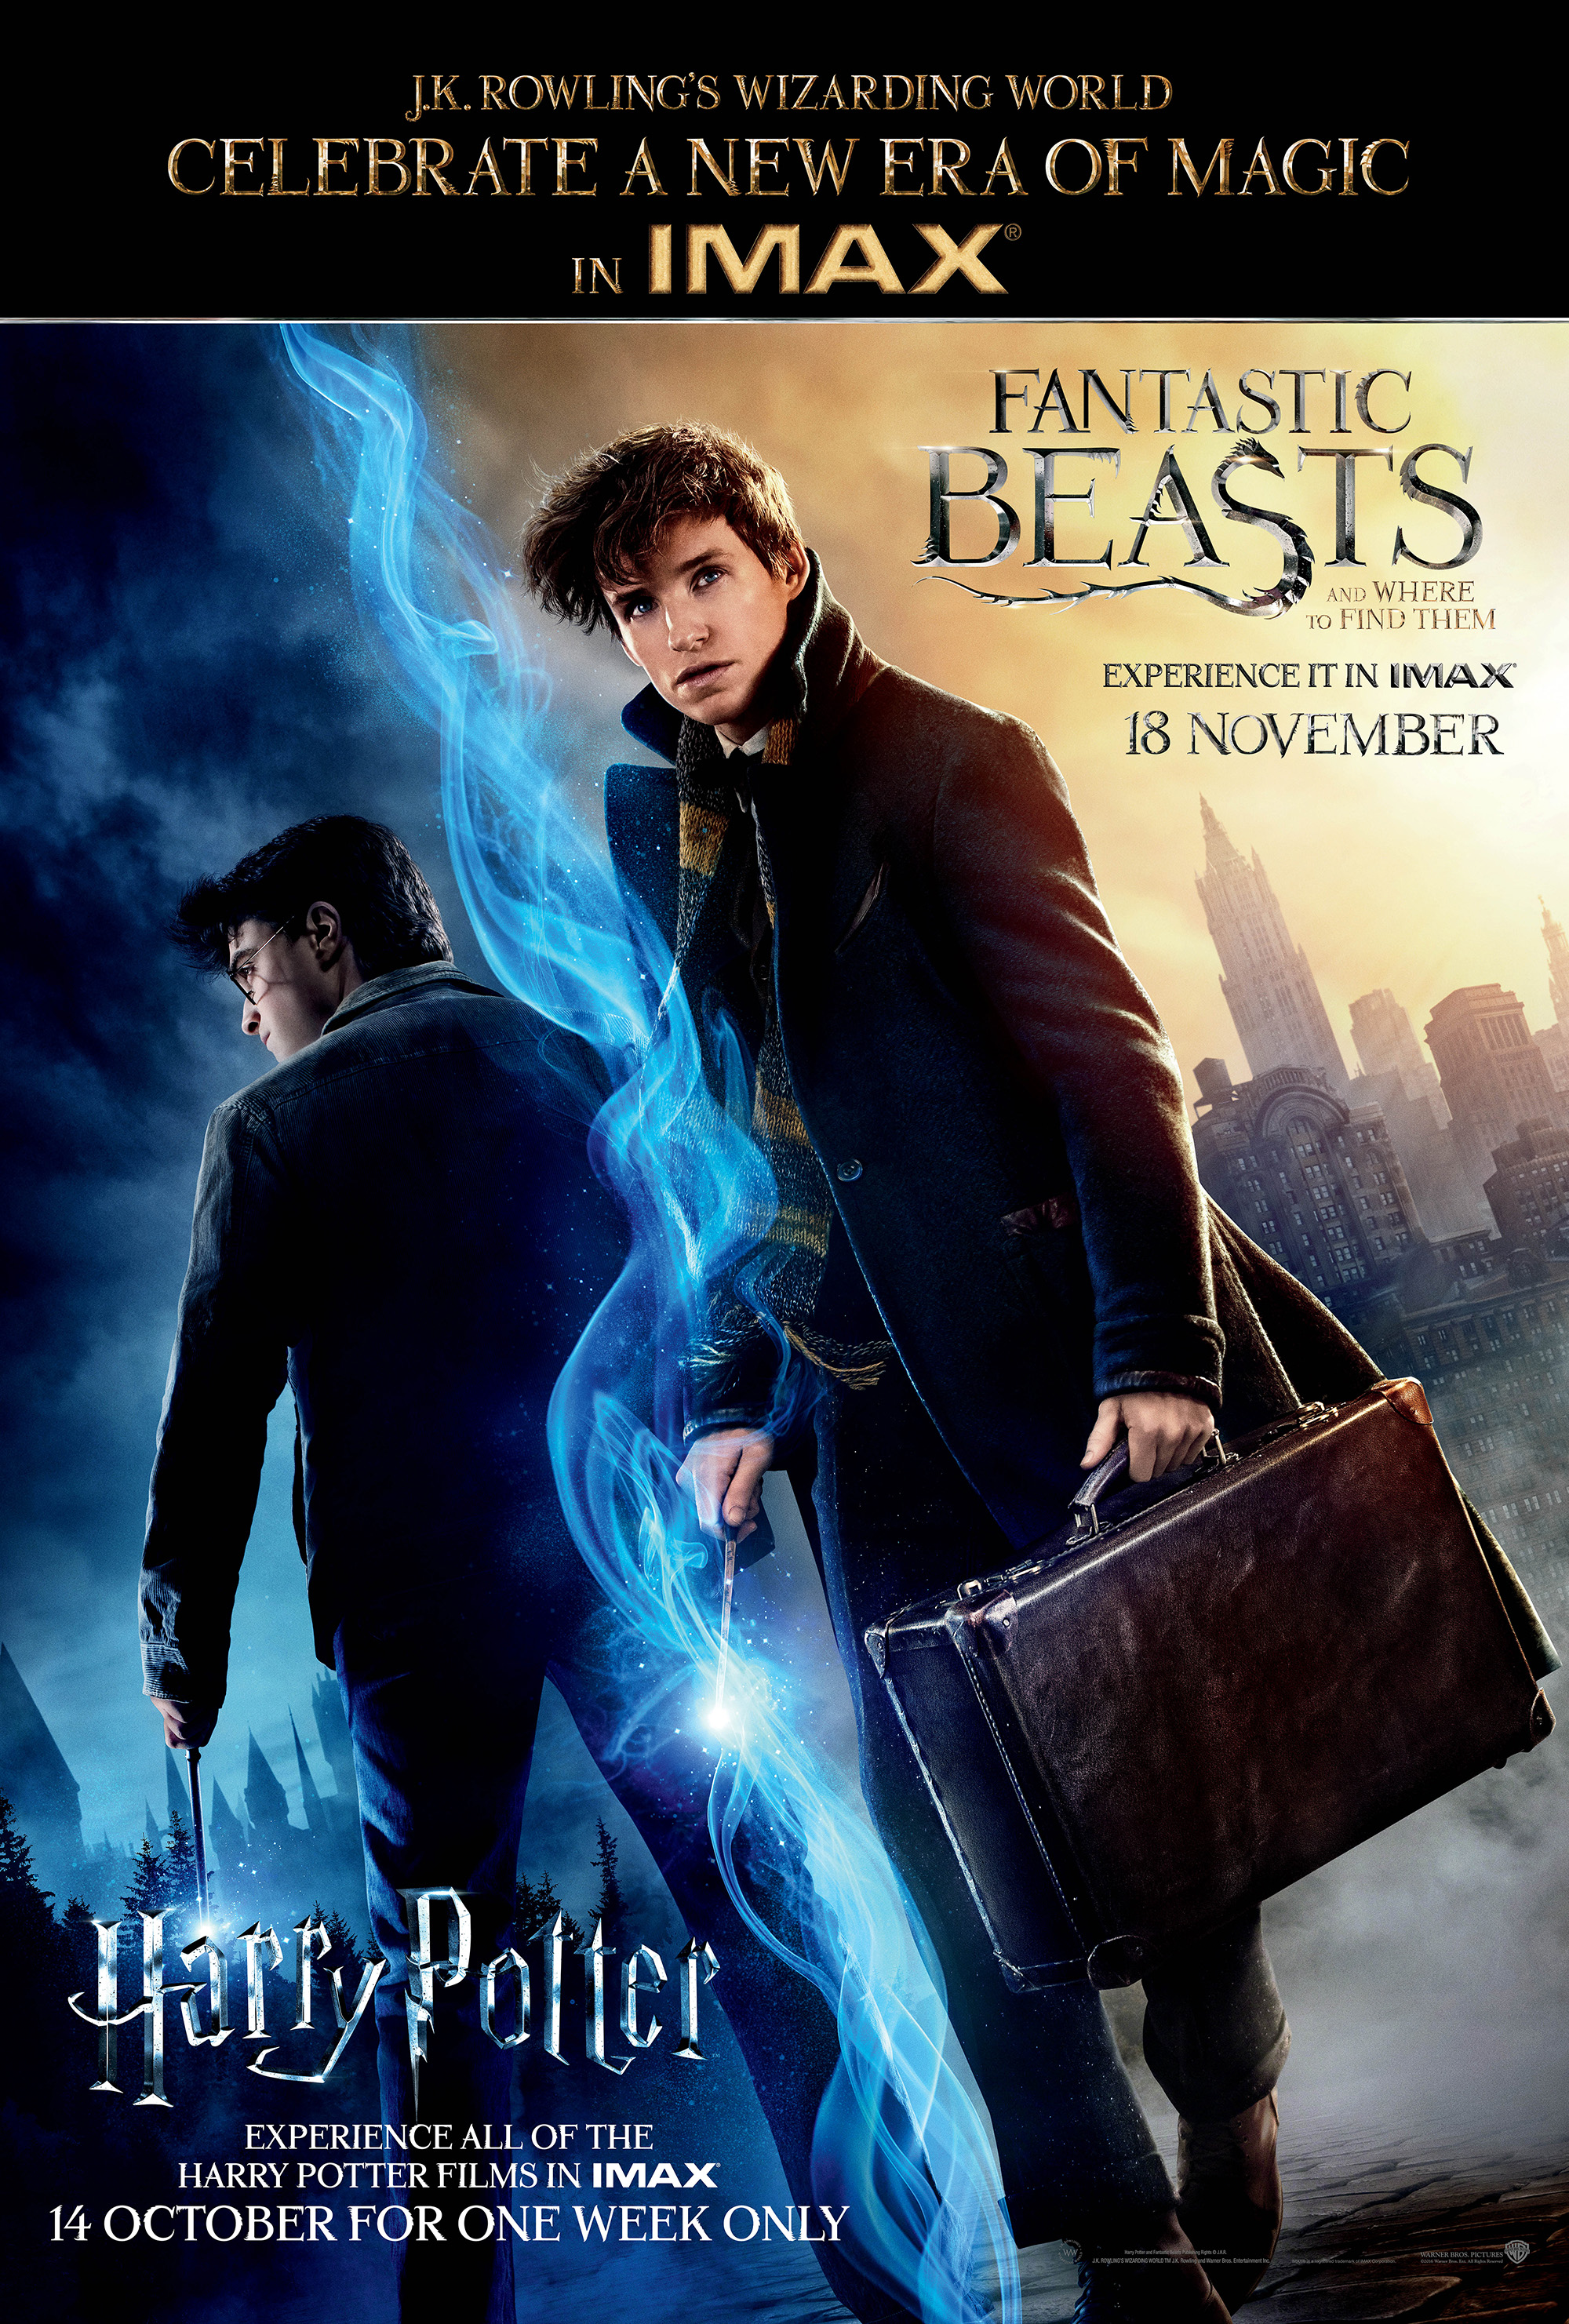 Harry Potter Movies To Get Imax Re Release Ahead Of Fantastic Beasts